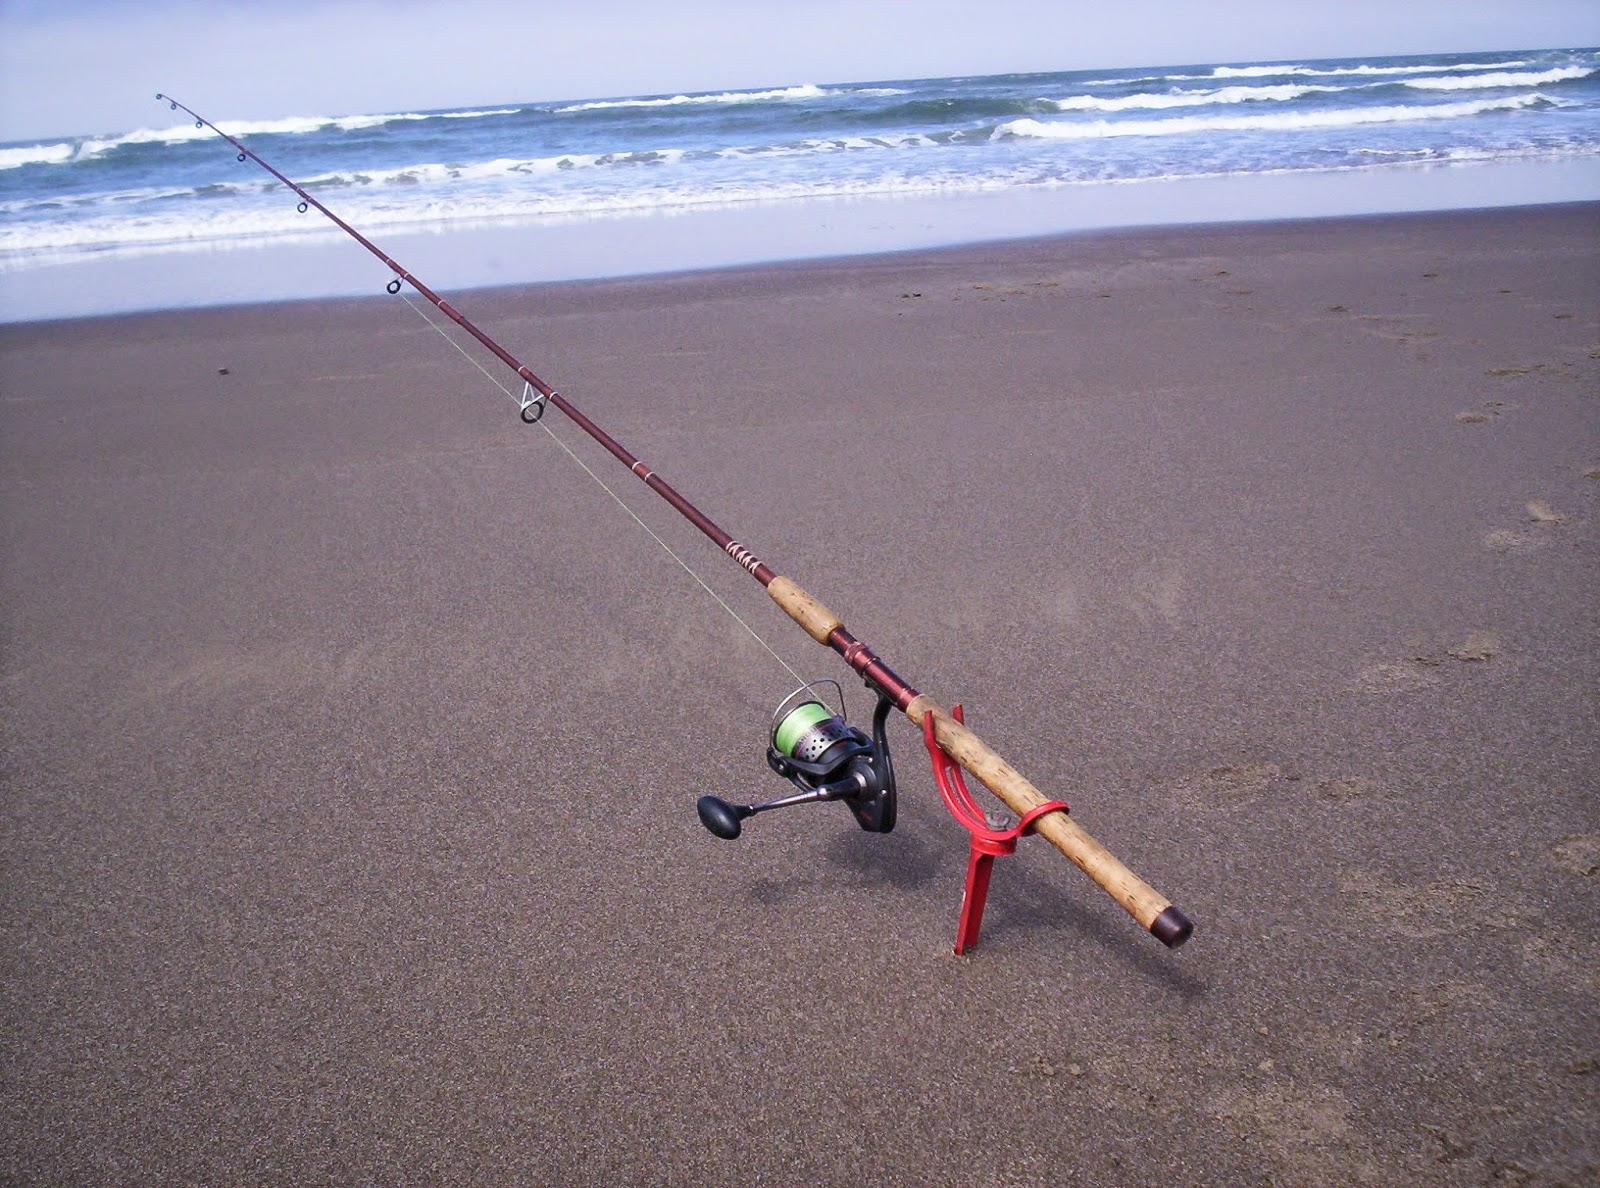 my experience fishing how to fish essay Save your essays here so you can angler has their particular favorite they like to fish for fishing for shark and continue reading this essay continue.